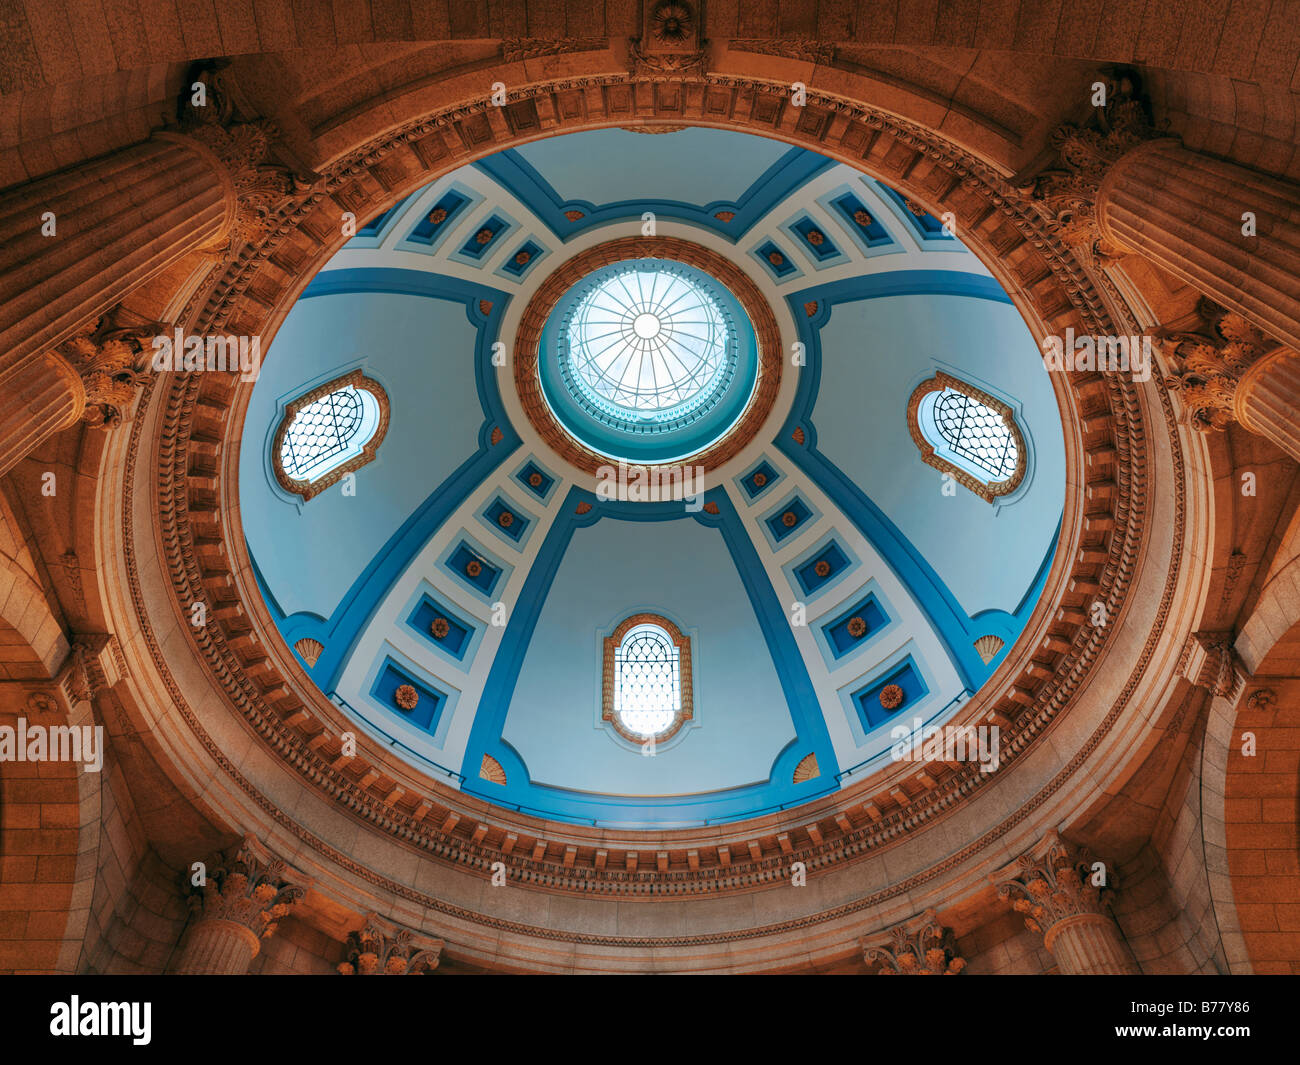 Manitoba Legislative Building interior view looking up into the cupola - Stock Image